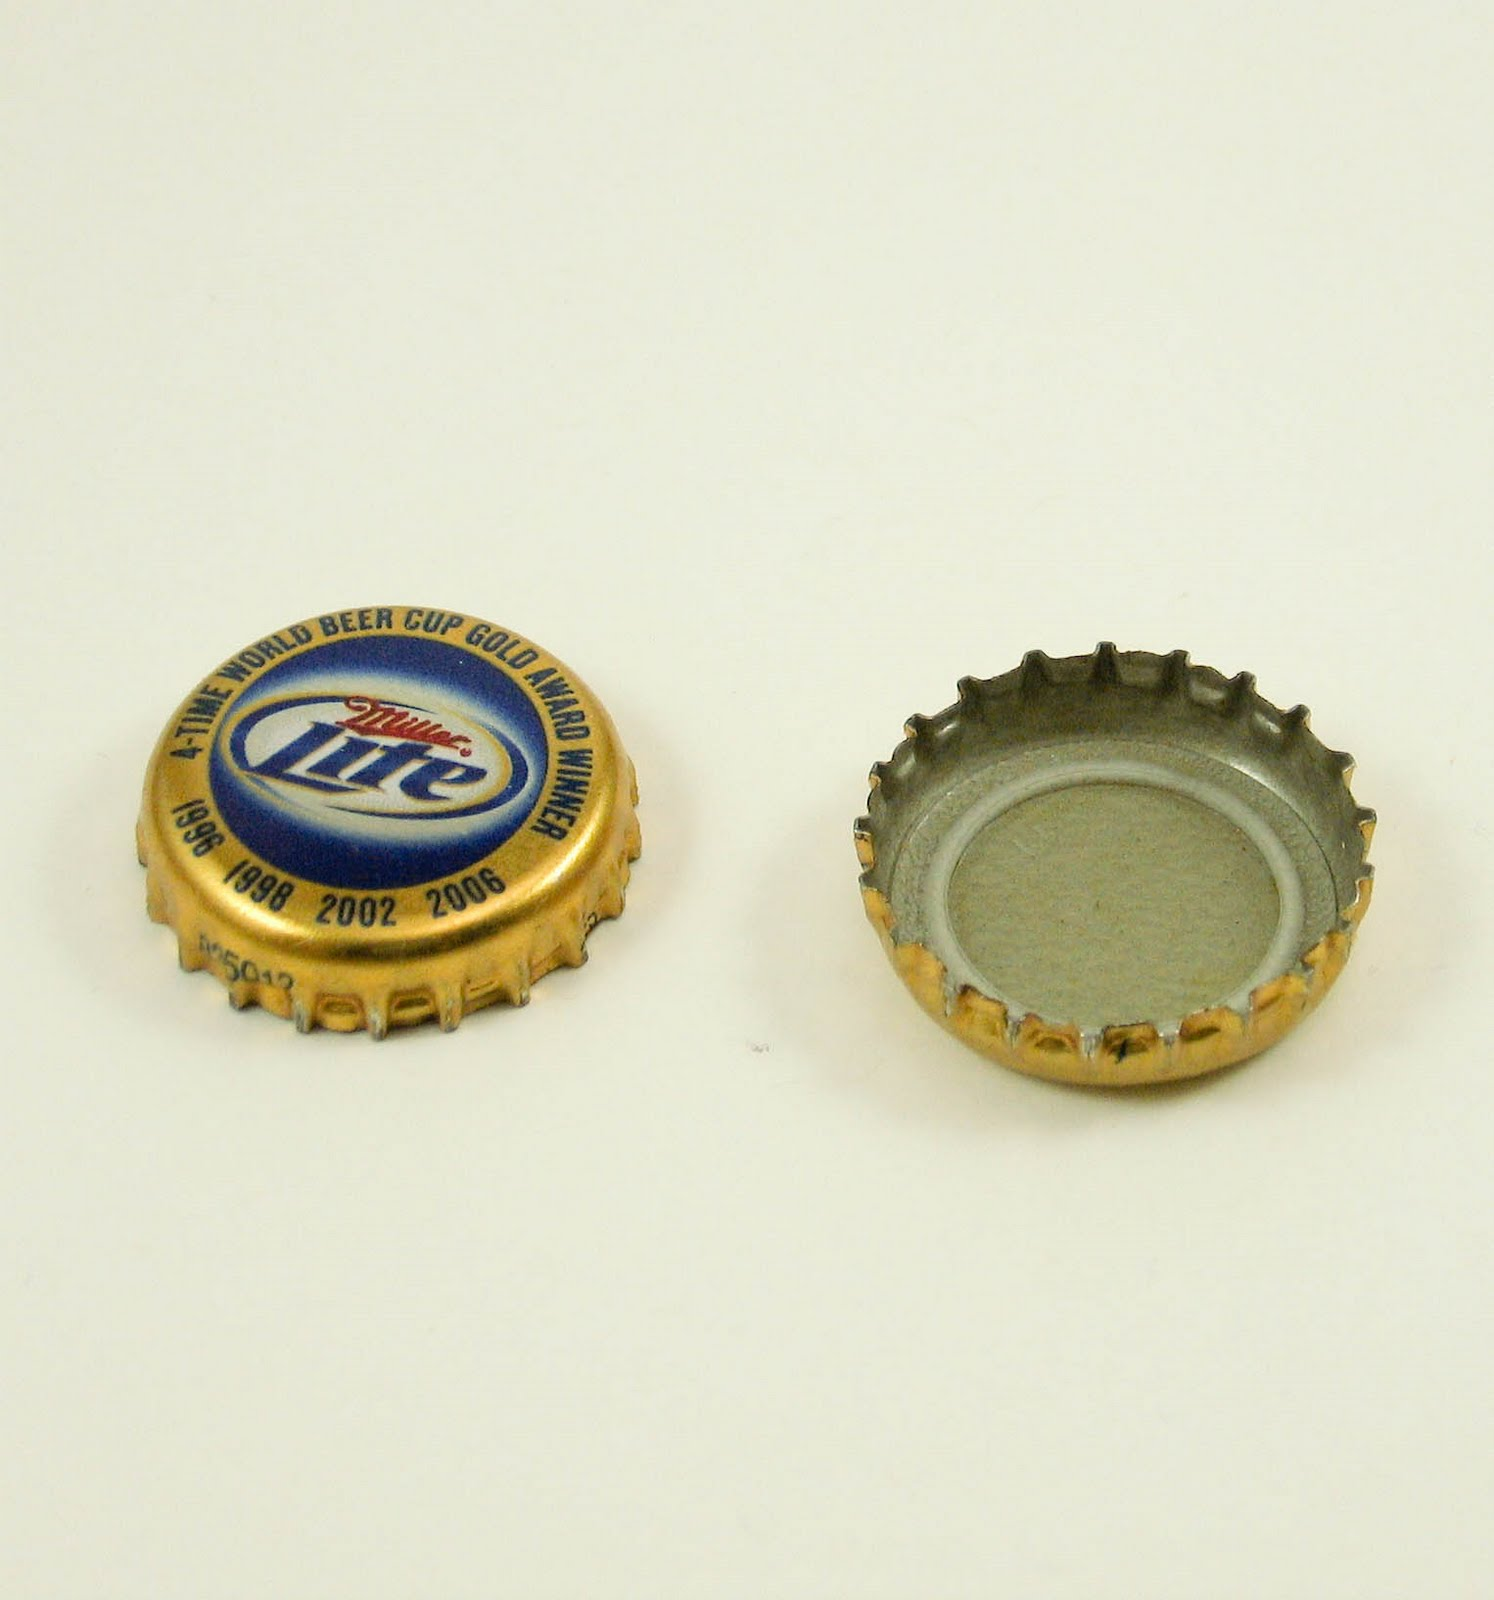 Jubilantwares upcycling bottle caps for What can i make with beer bottle caps